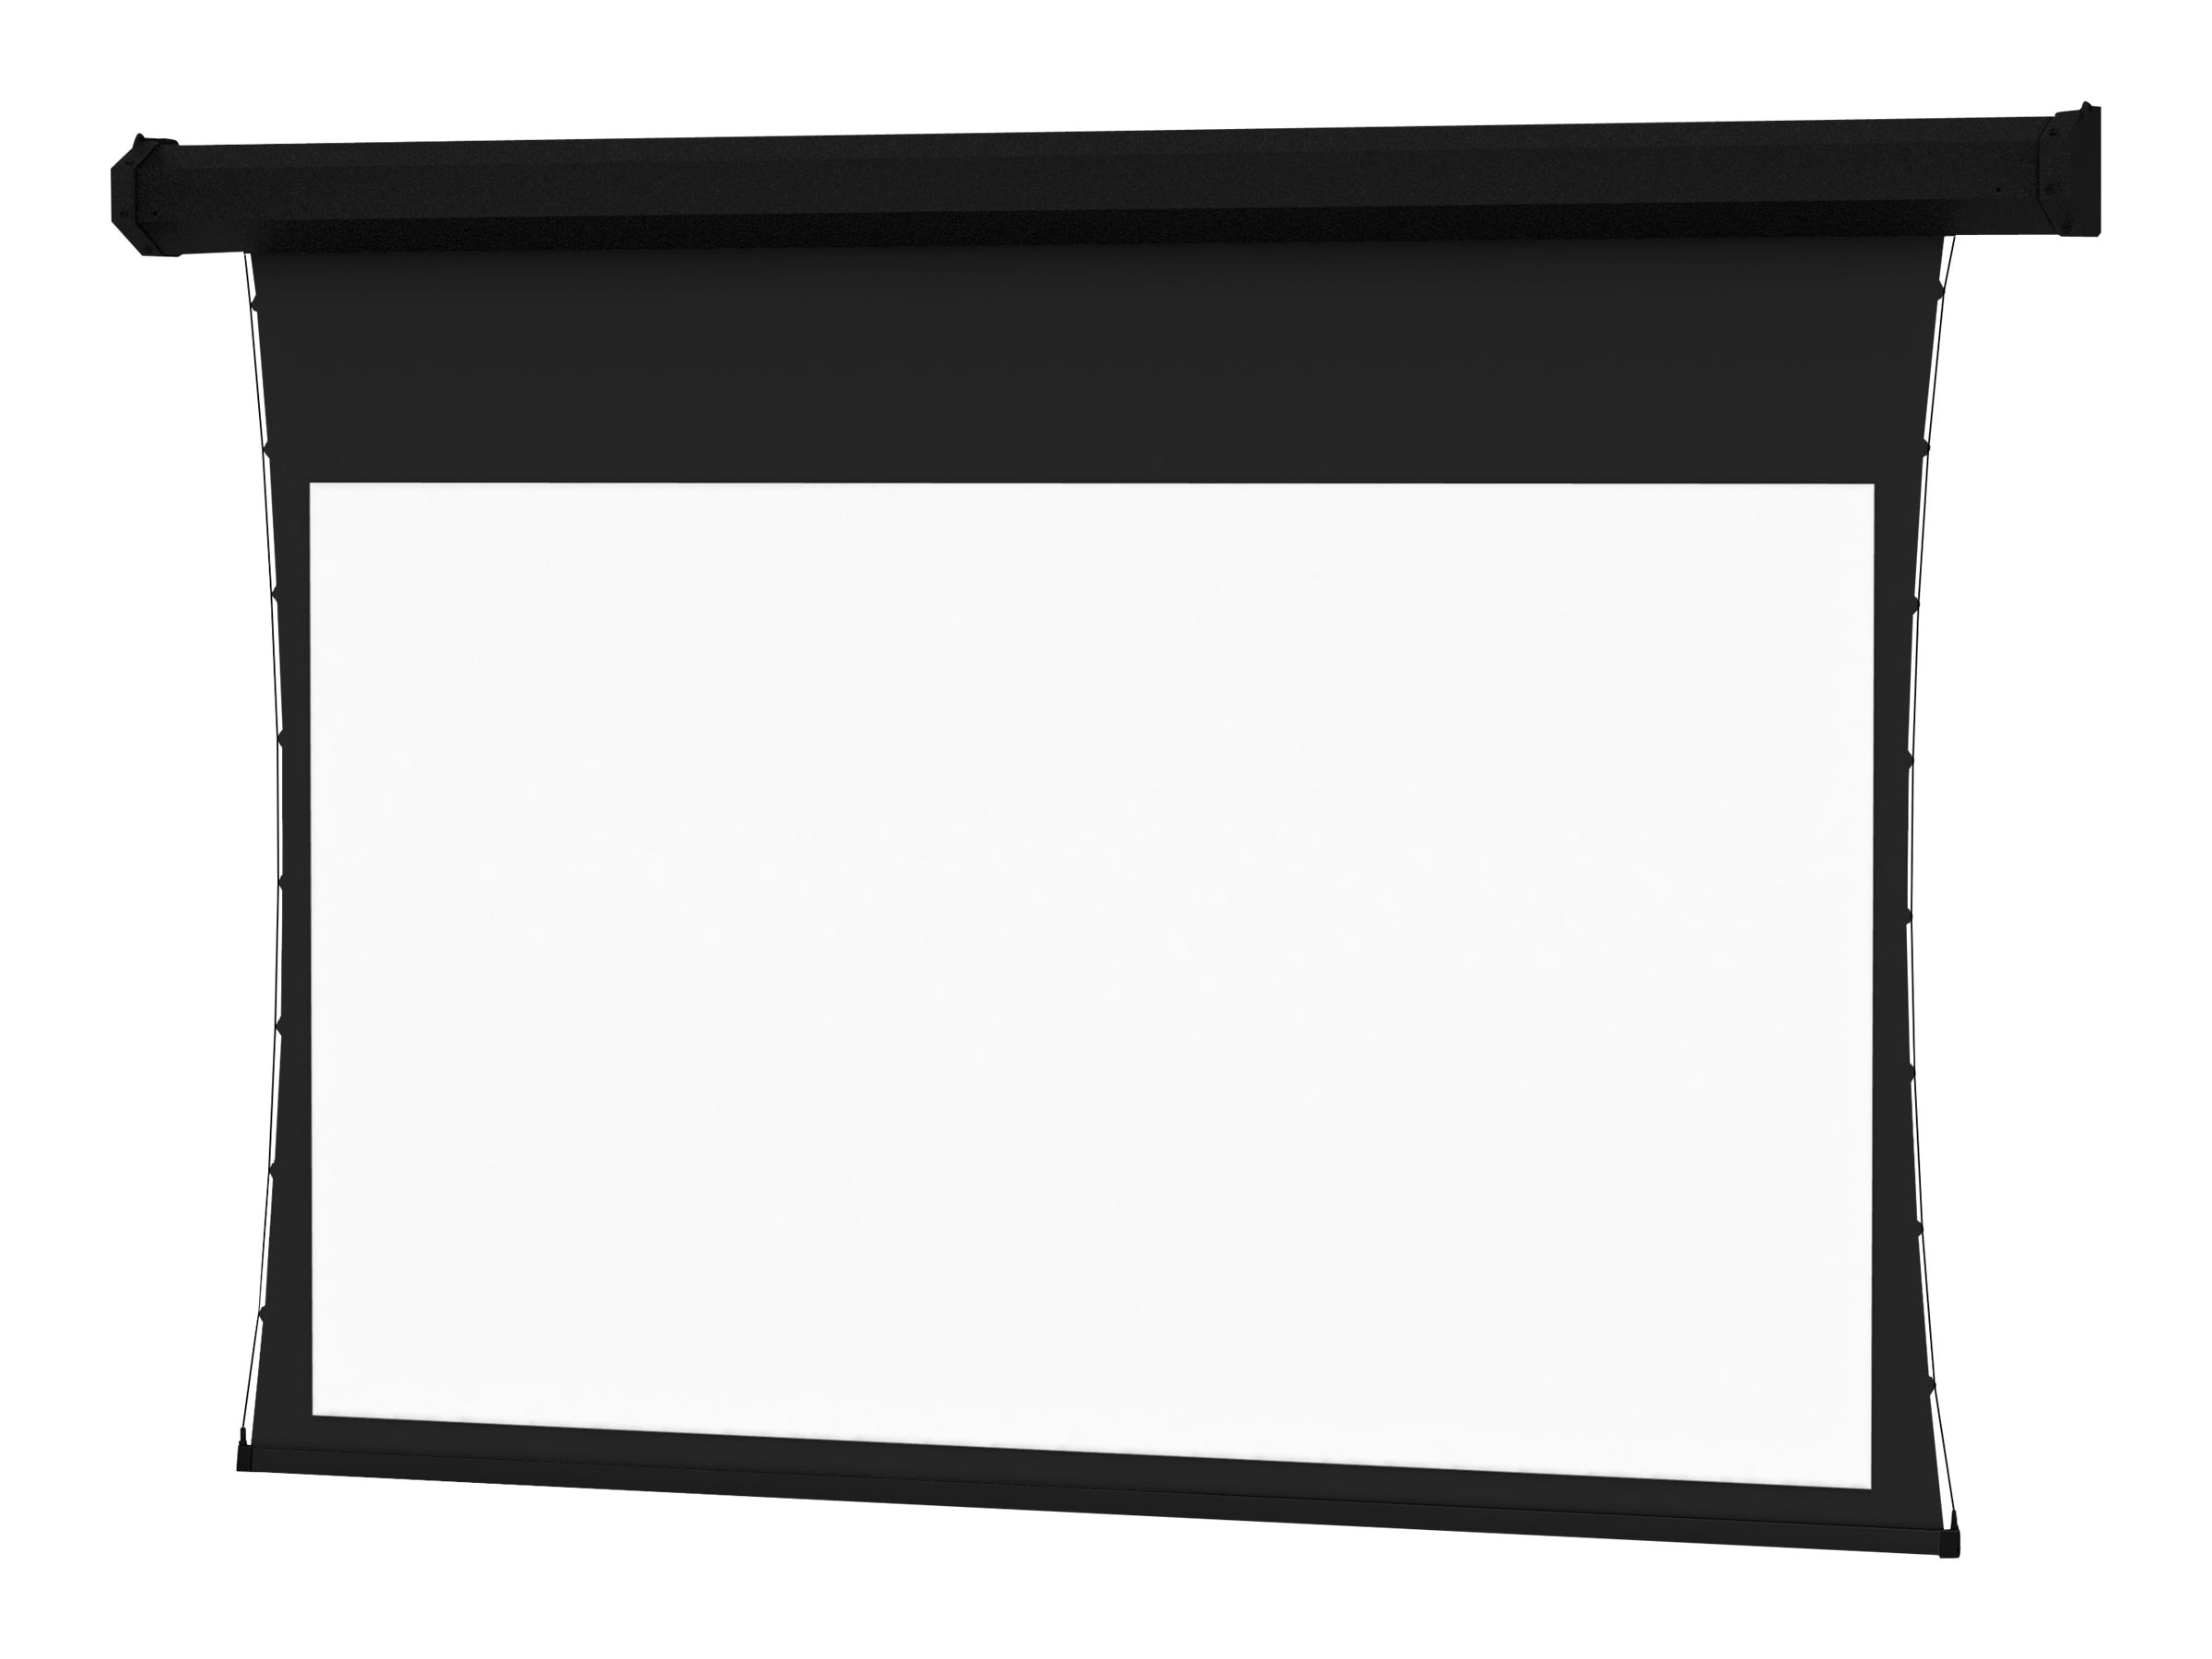 Da-Lite Tensioned Cosmopolitan Electrol Projection Screen, Da-Mat, 65 x 116